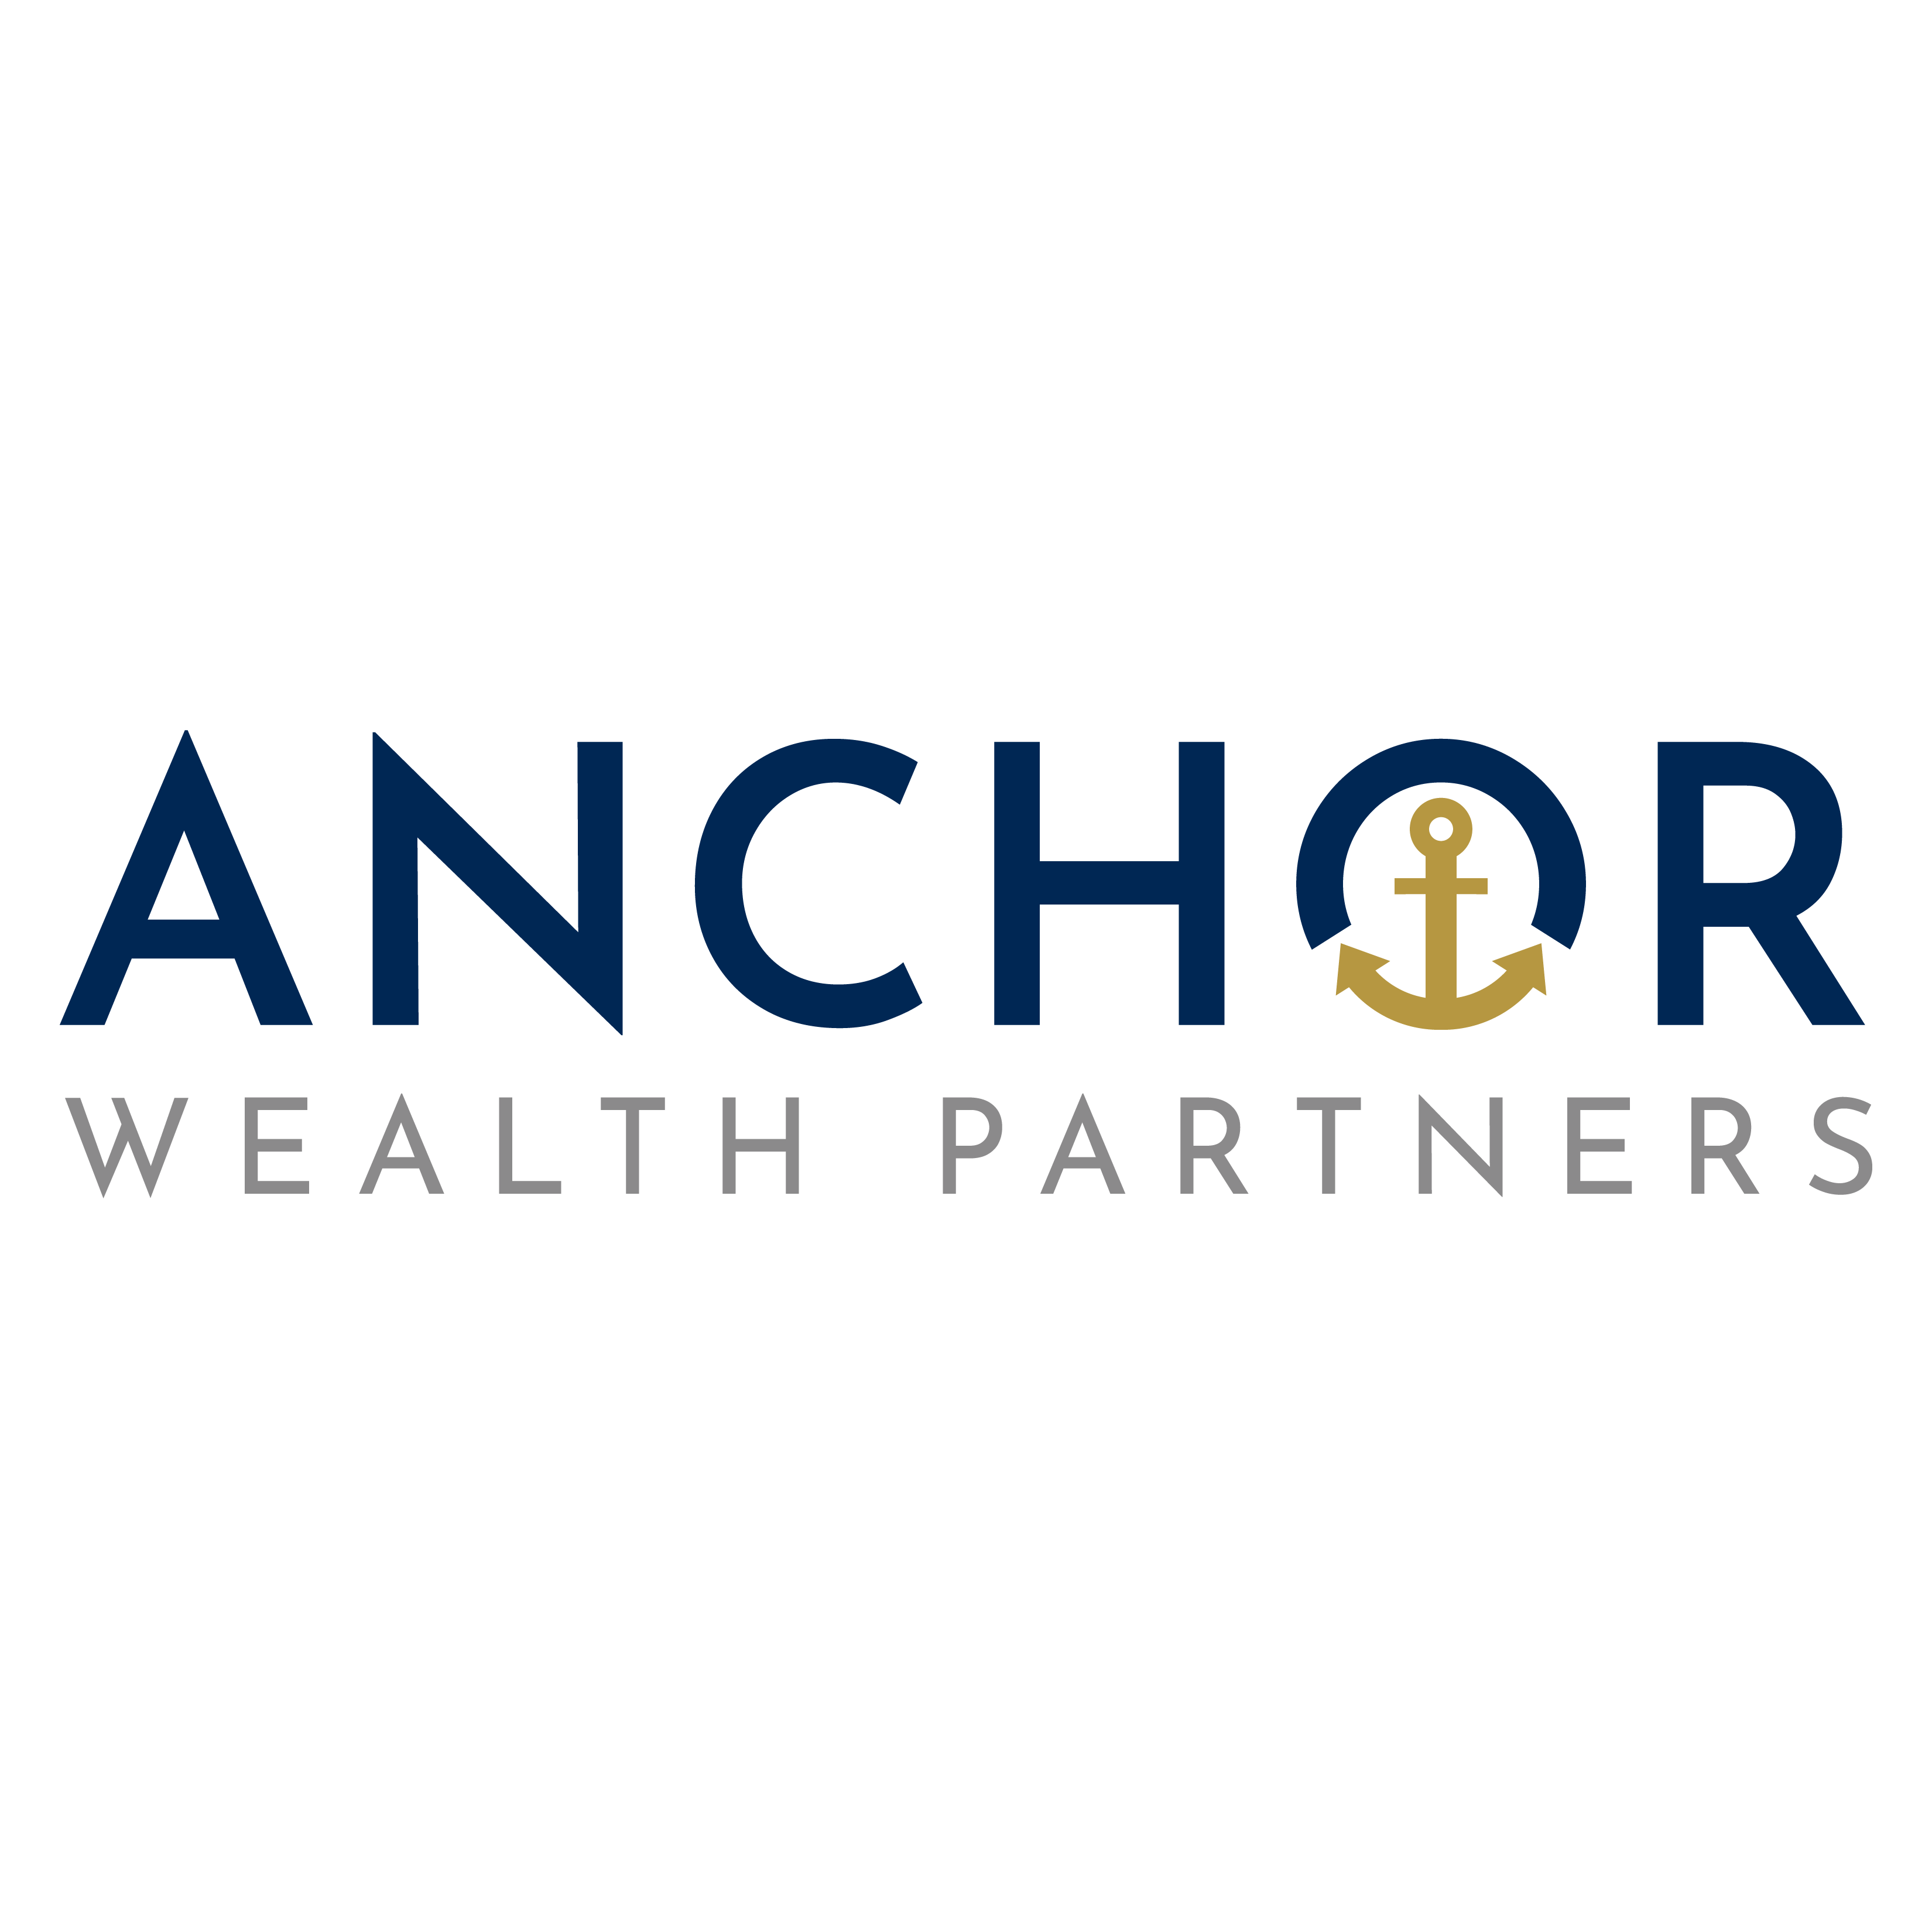 Anchor Wealth Partners